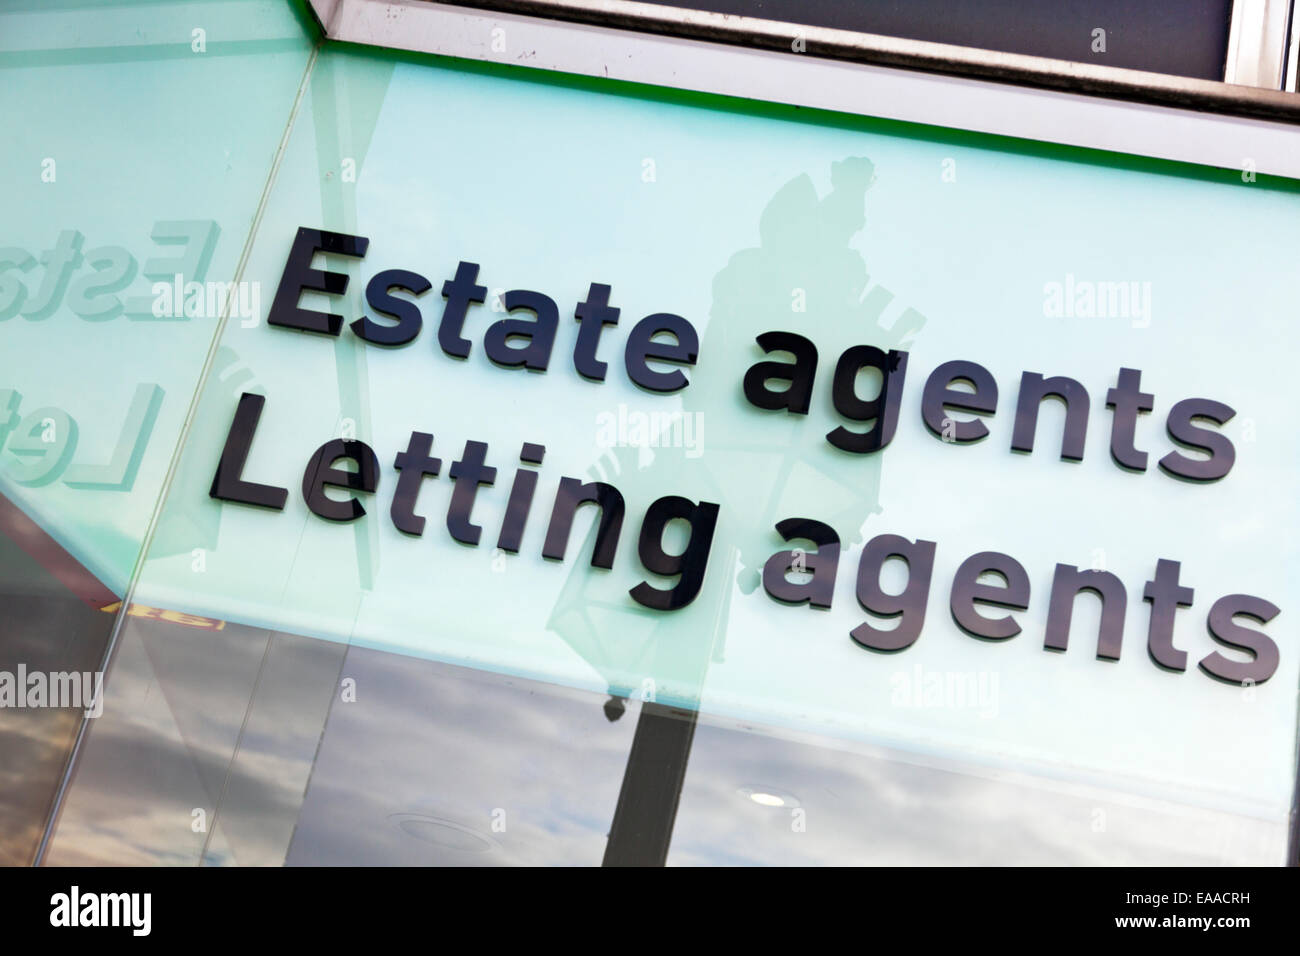 Estate agents agent letting sign words display shop store advertising - Stock Image